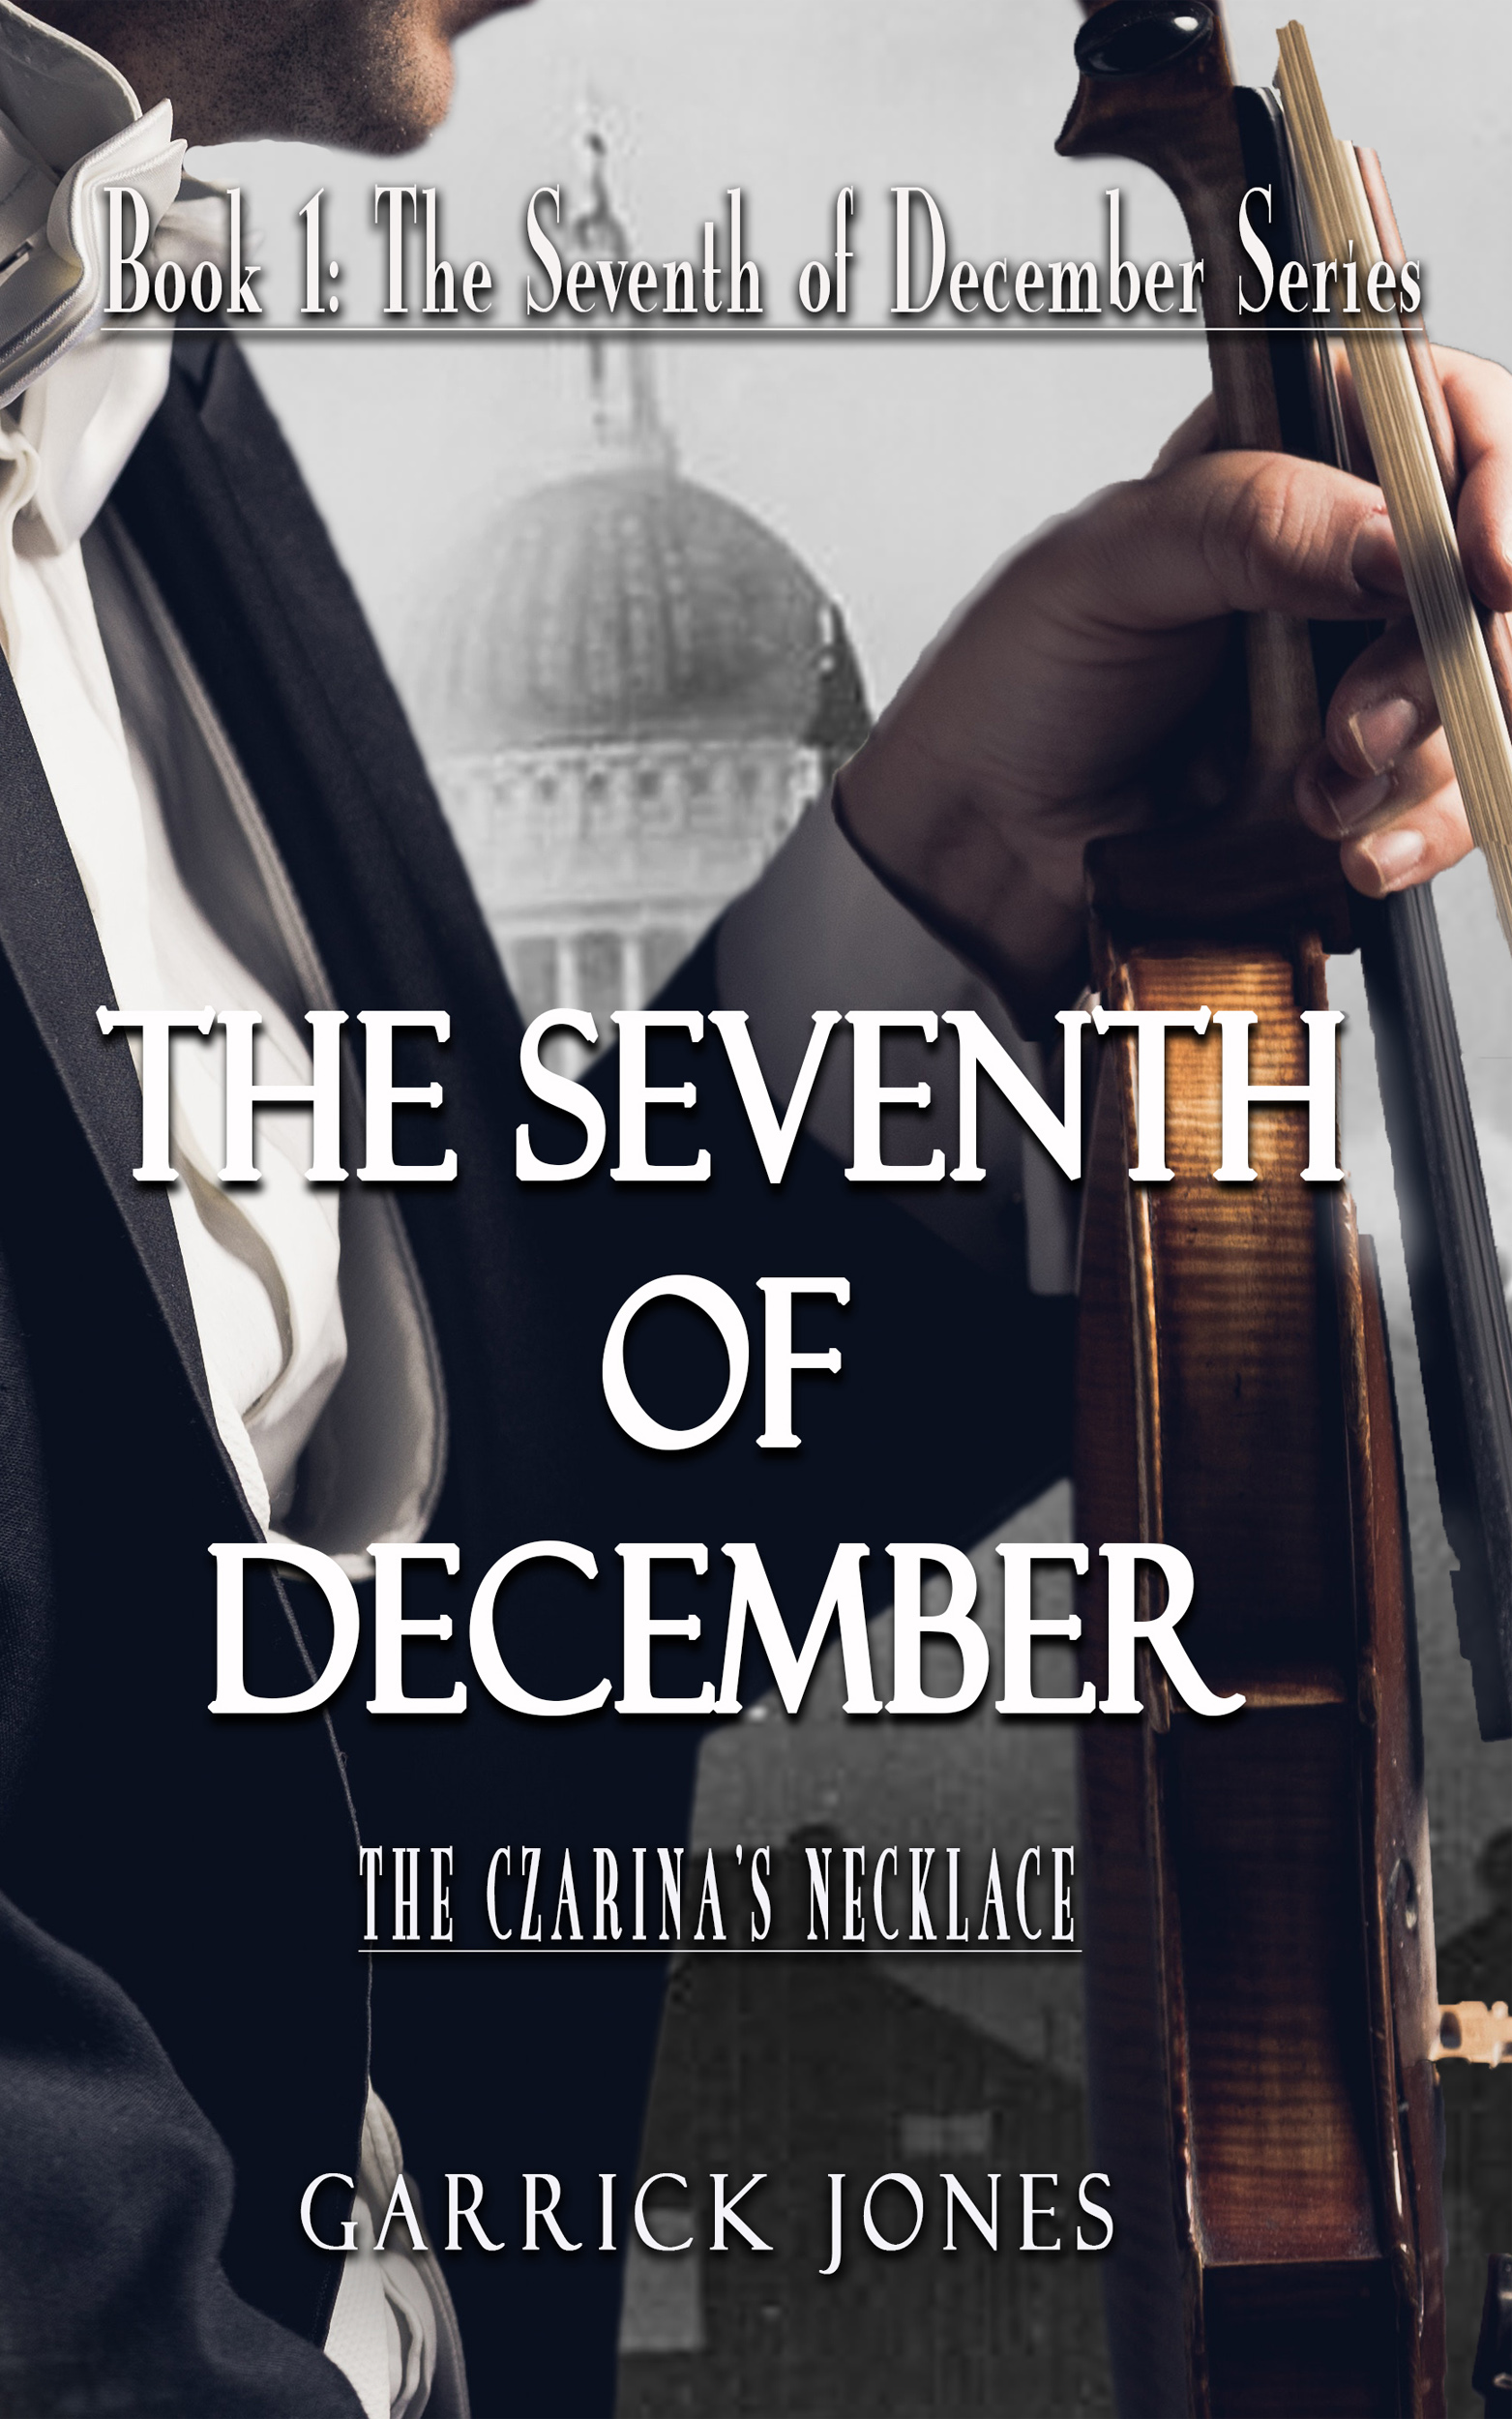 The Seventh of December: The Czarina's Necklace